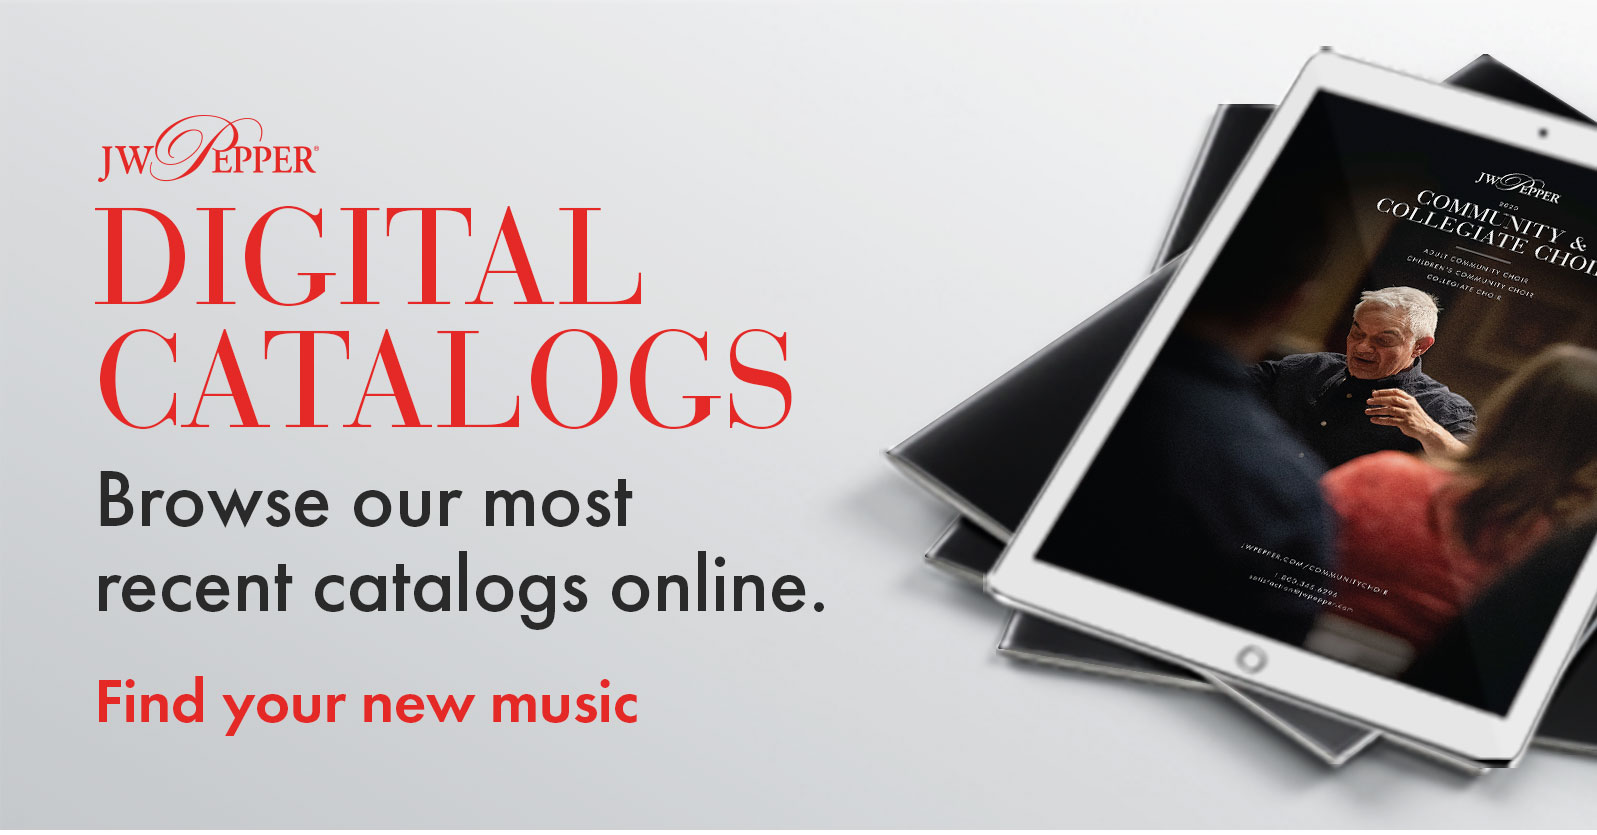 Find your new choir music. Browse our most recent catalogs online!